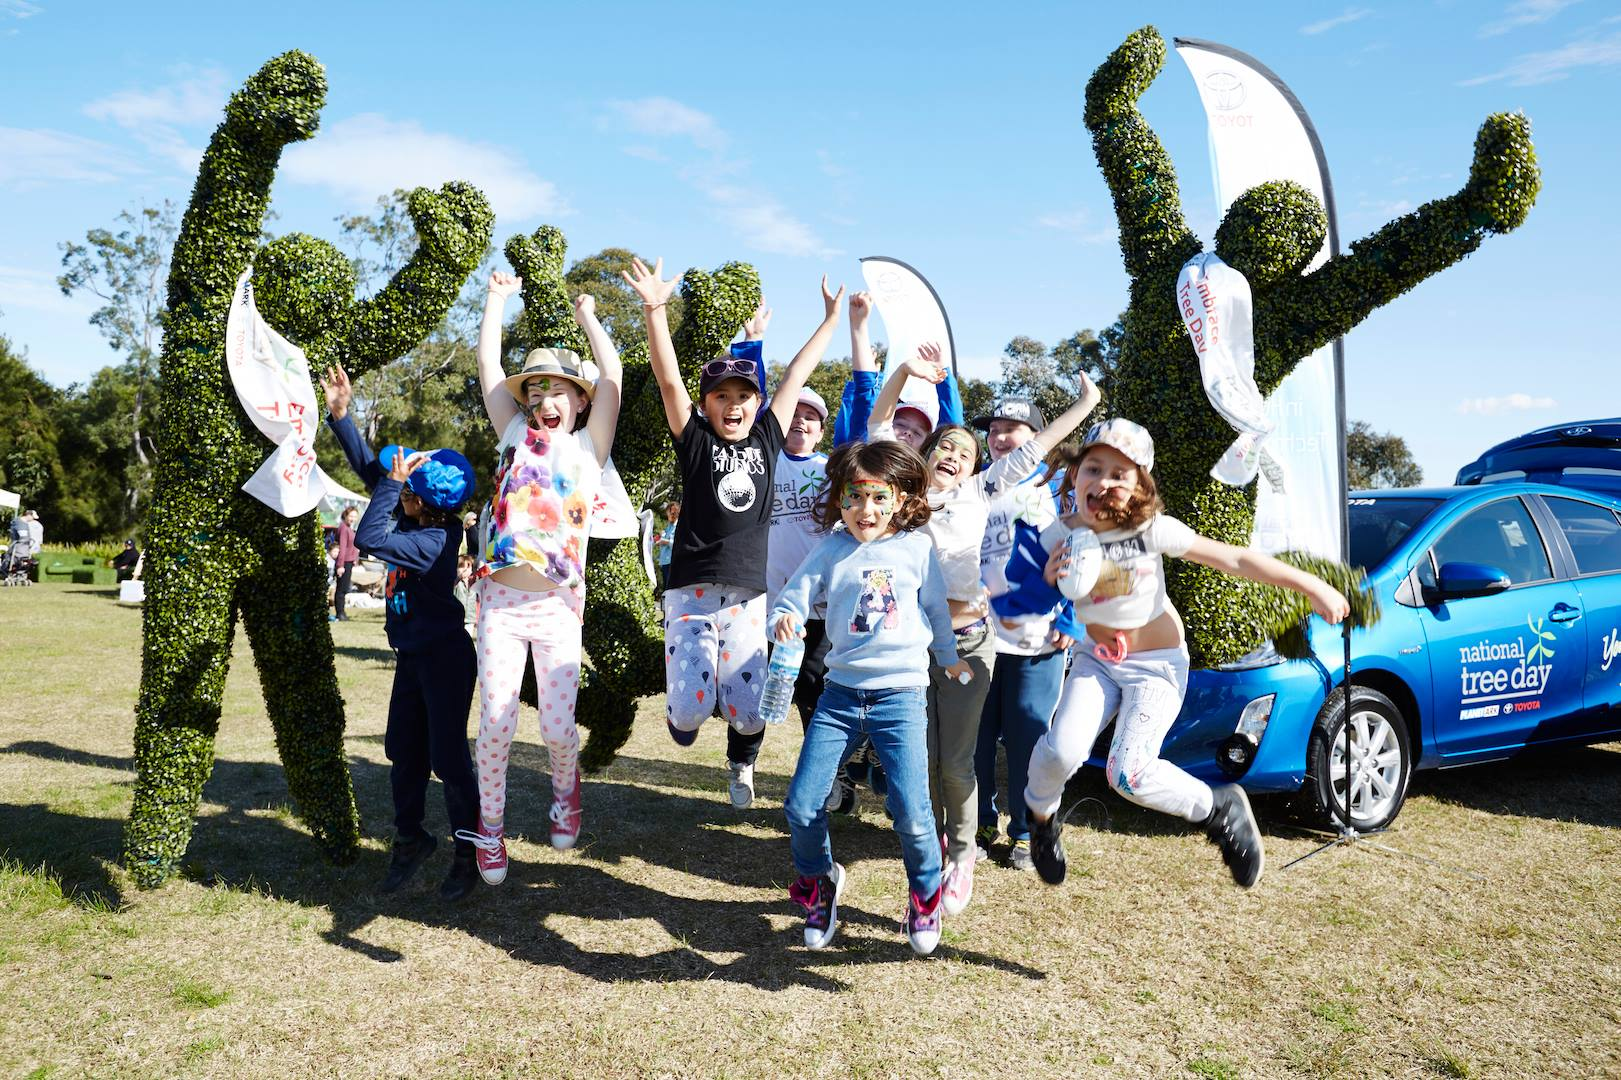 Kids celebrating National Tree Day in a festive way. Photo: Planet Ark